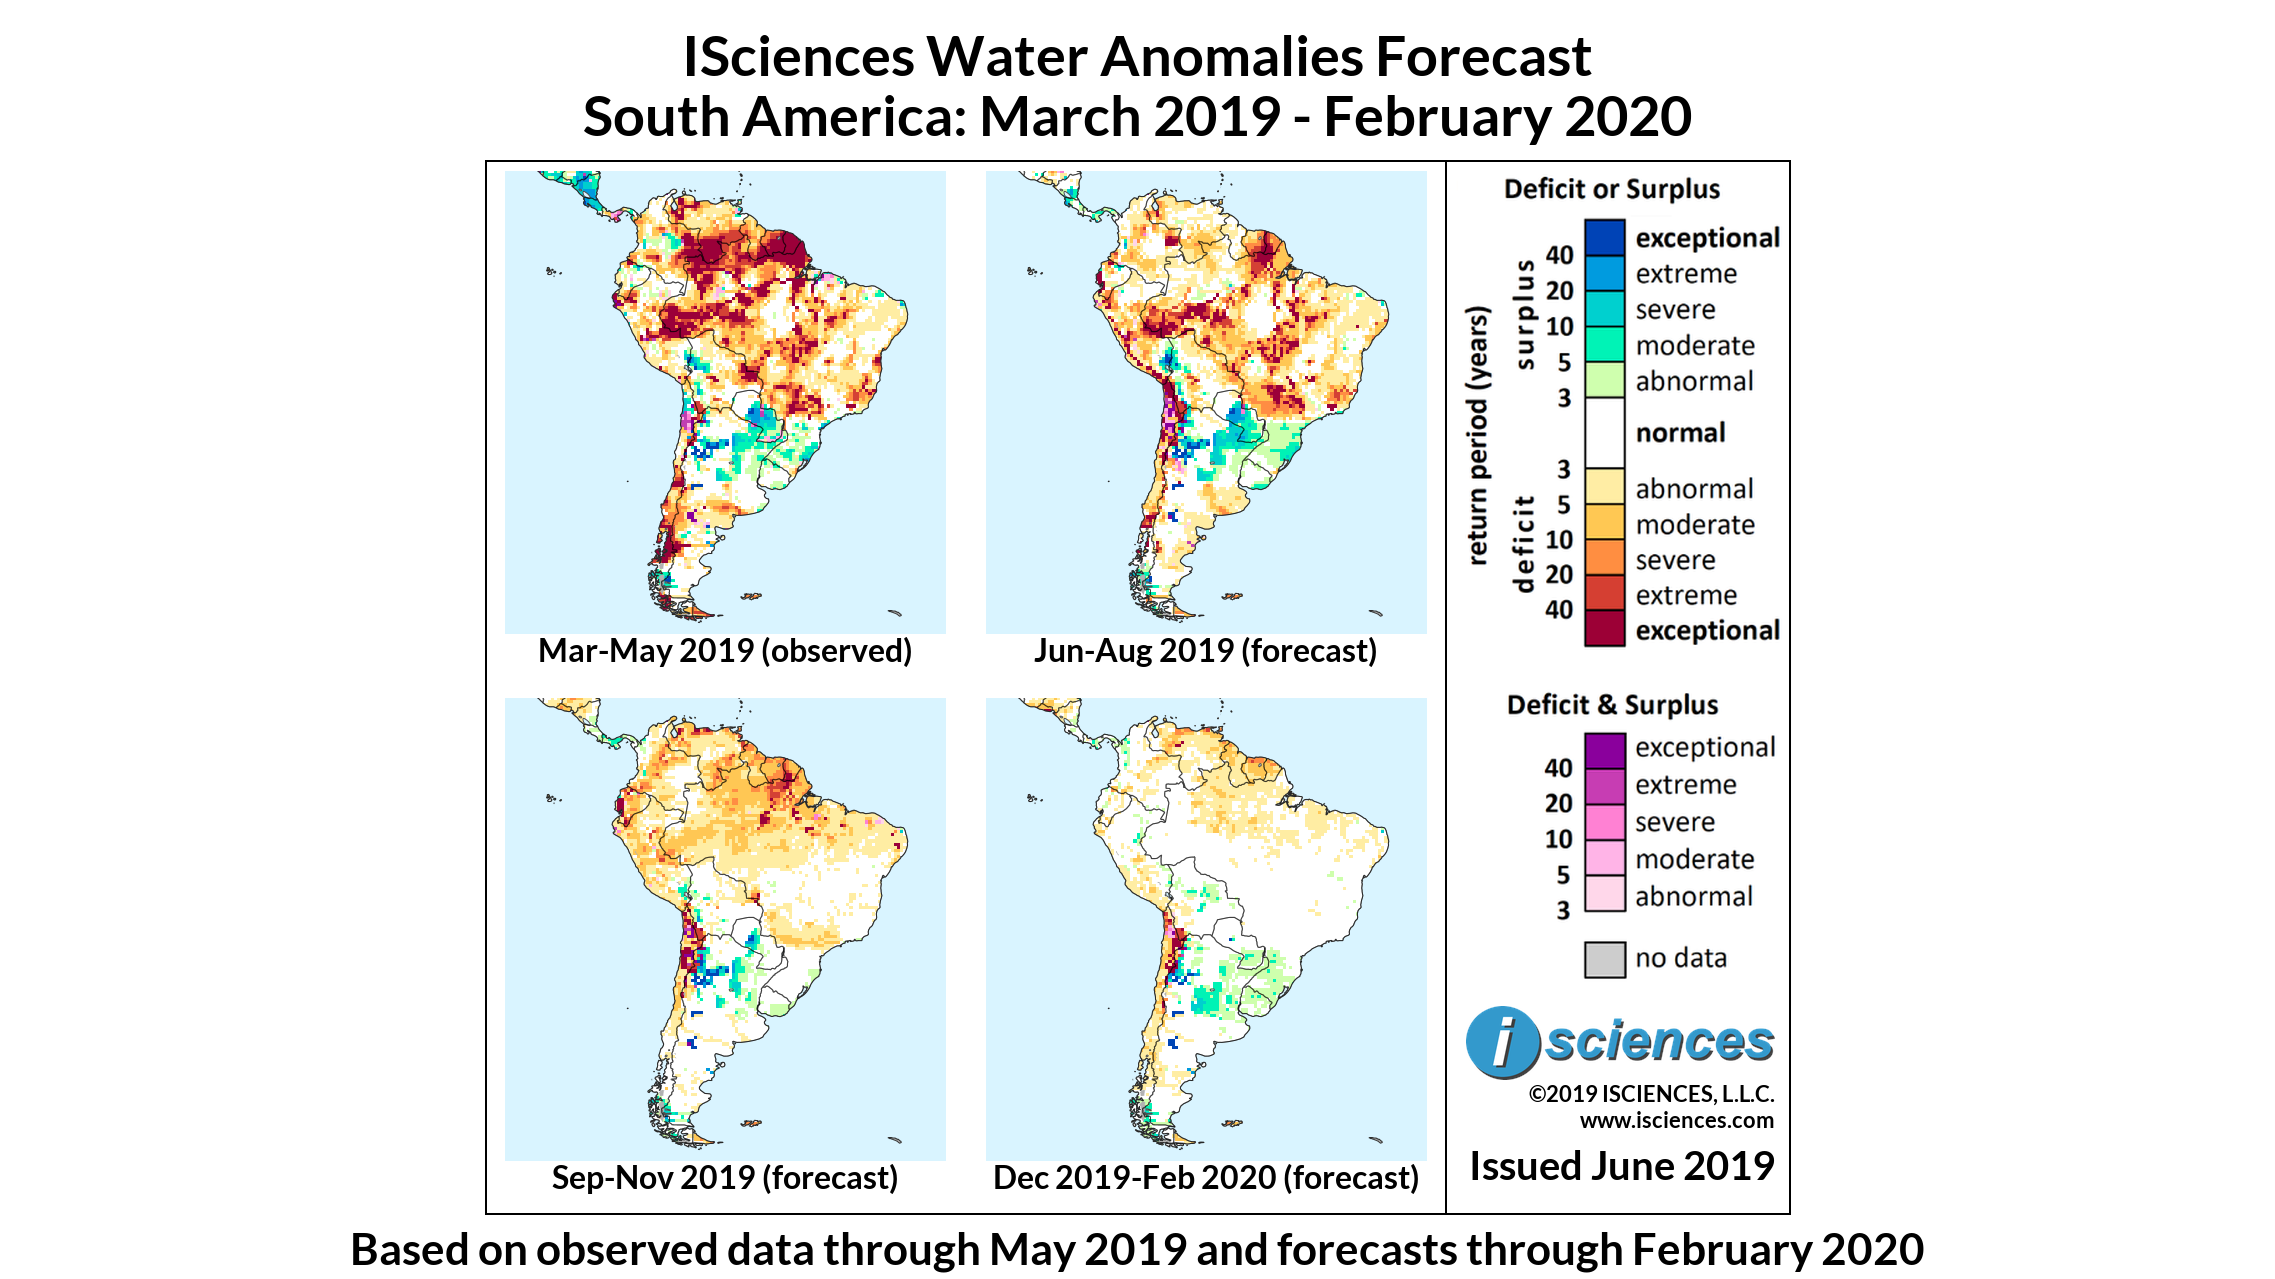 ISciences_R201905_South_America_Composite_Adjusted_201903-202002_3mo_panel.png